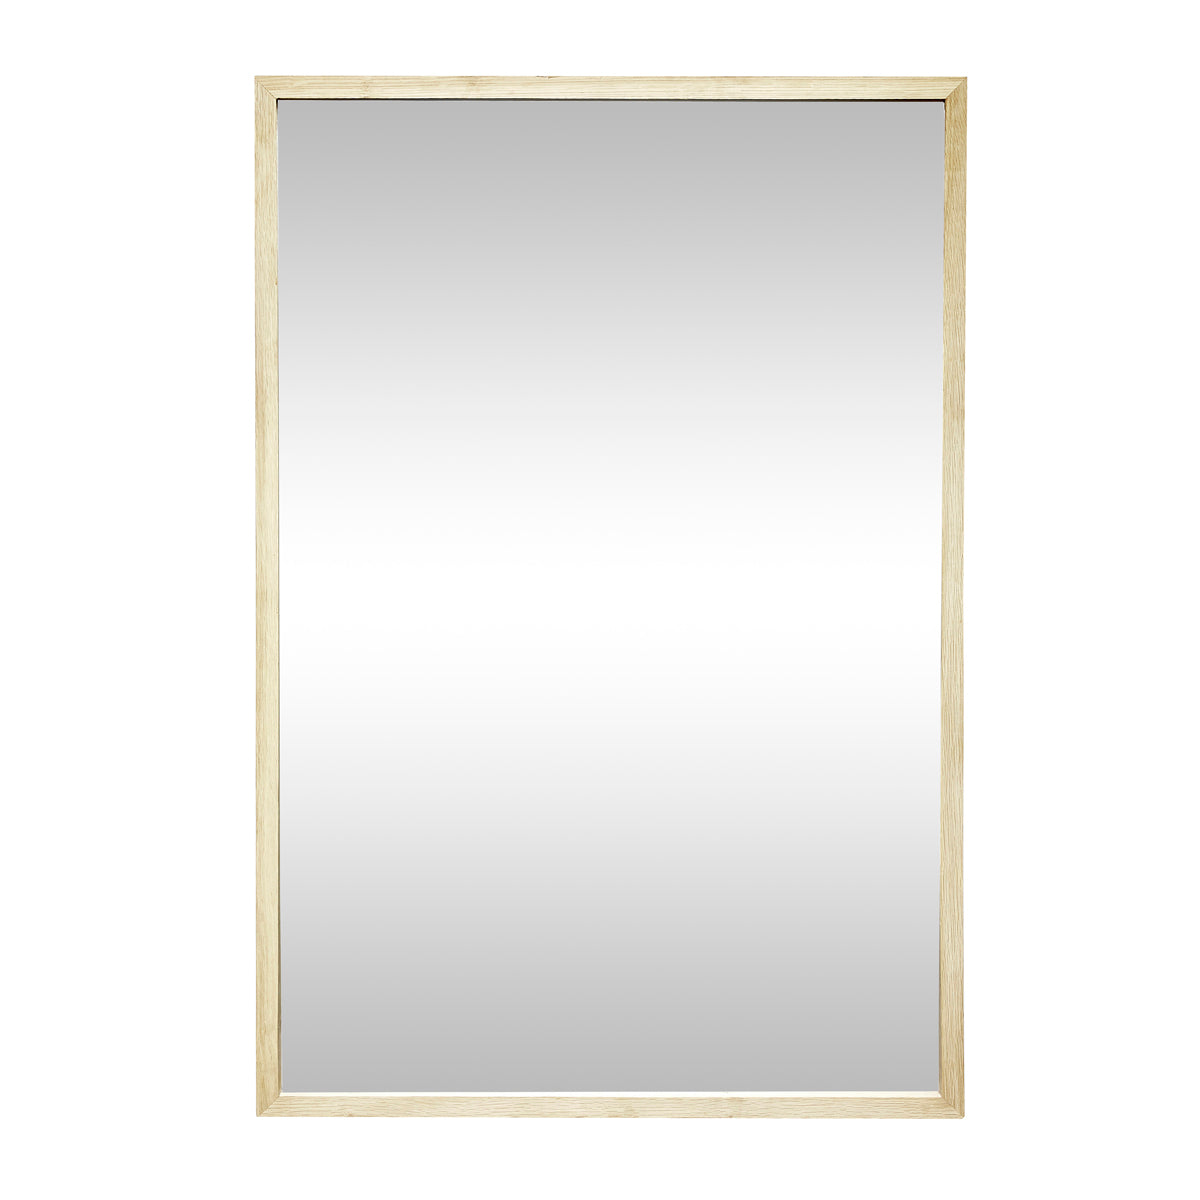 Simple wooden rectangular Mirror, Oak, Nature Hübsch